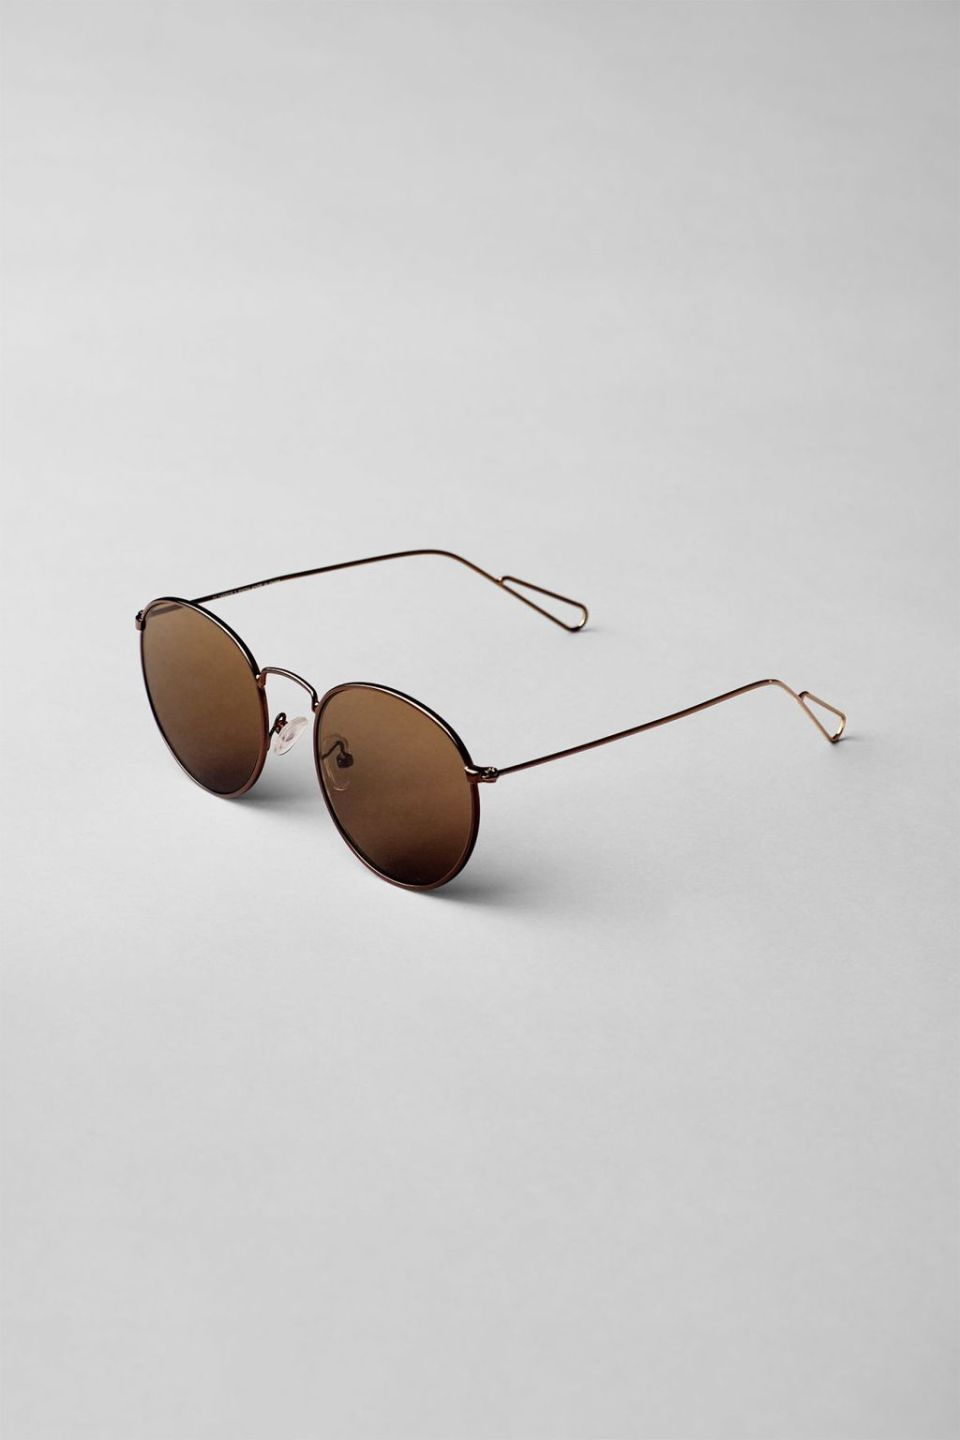 Explore Rounded Sunglasses